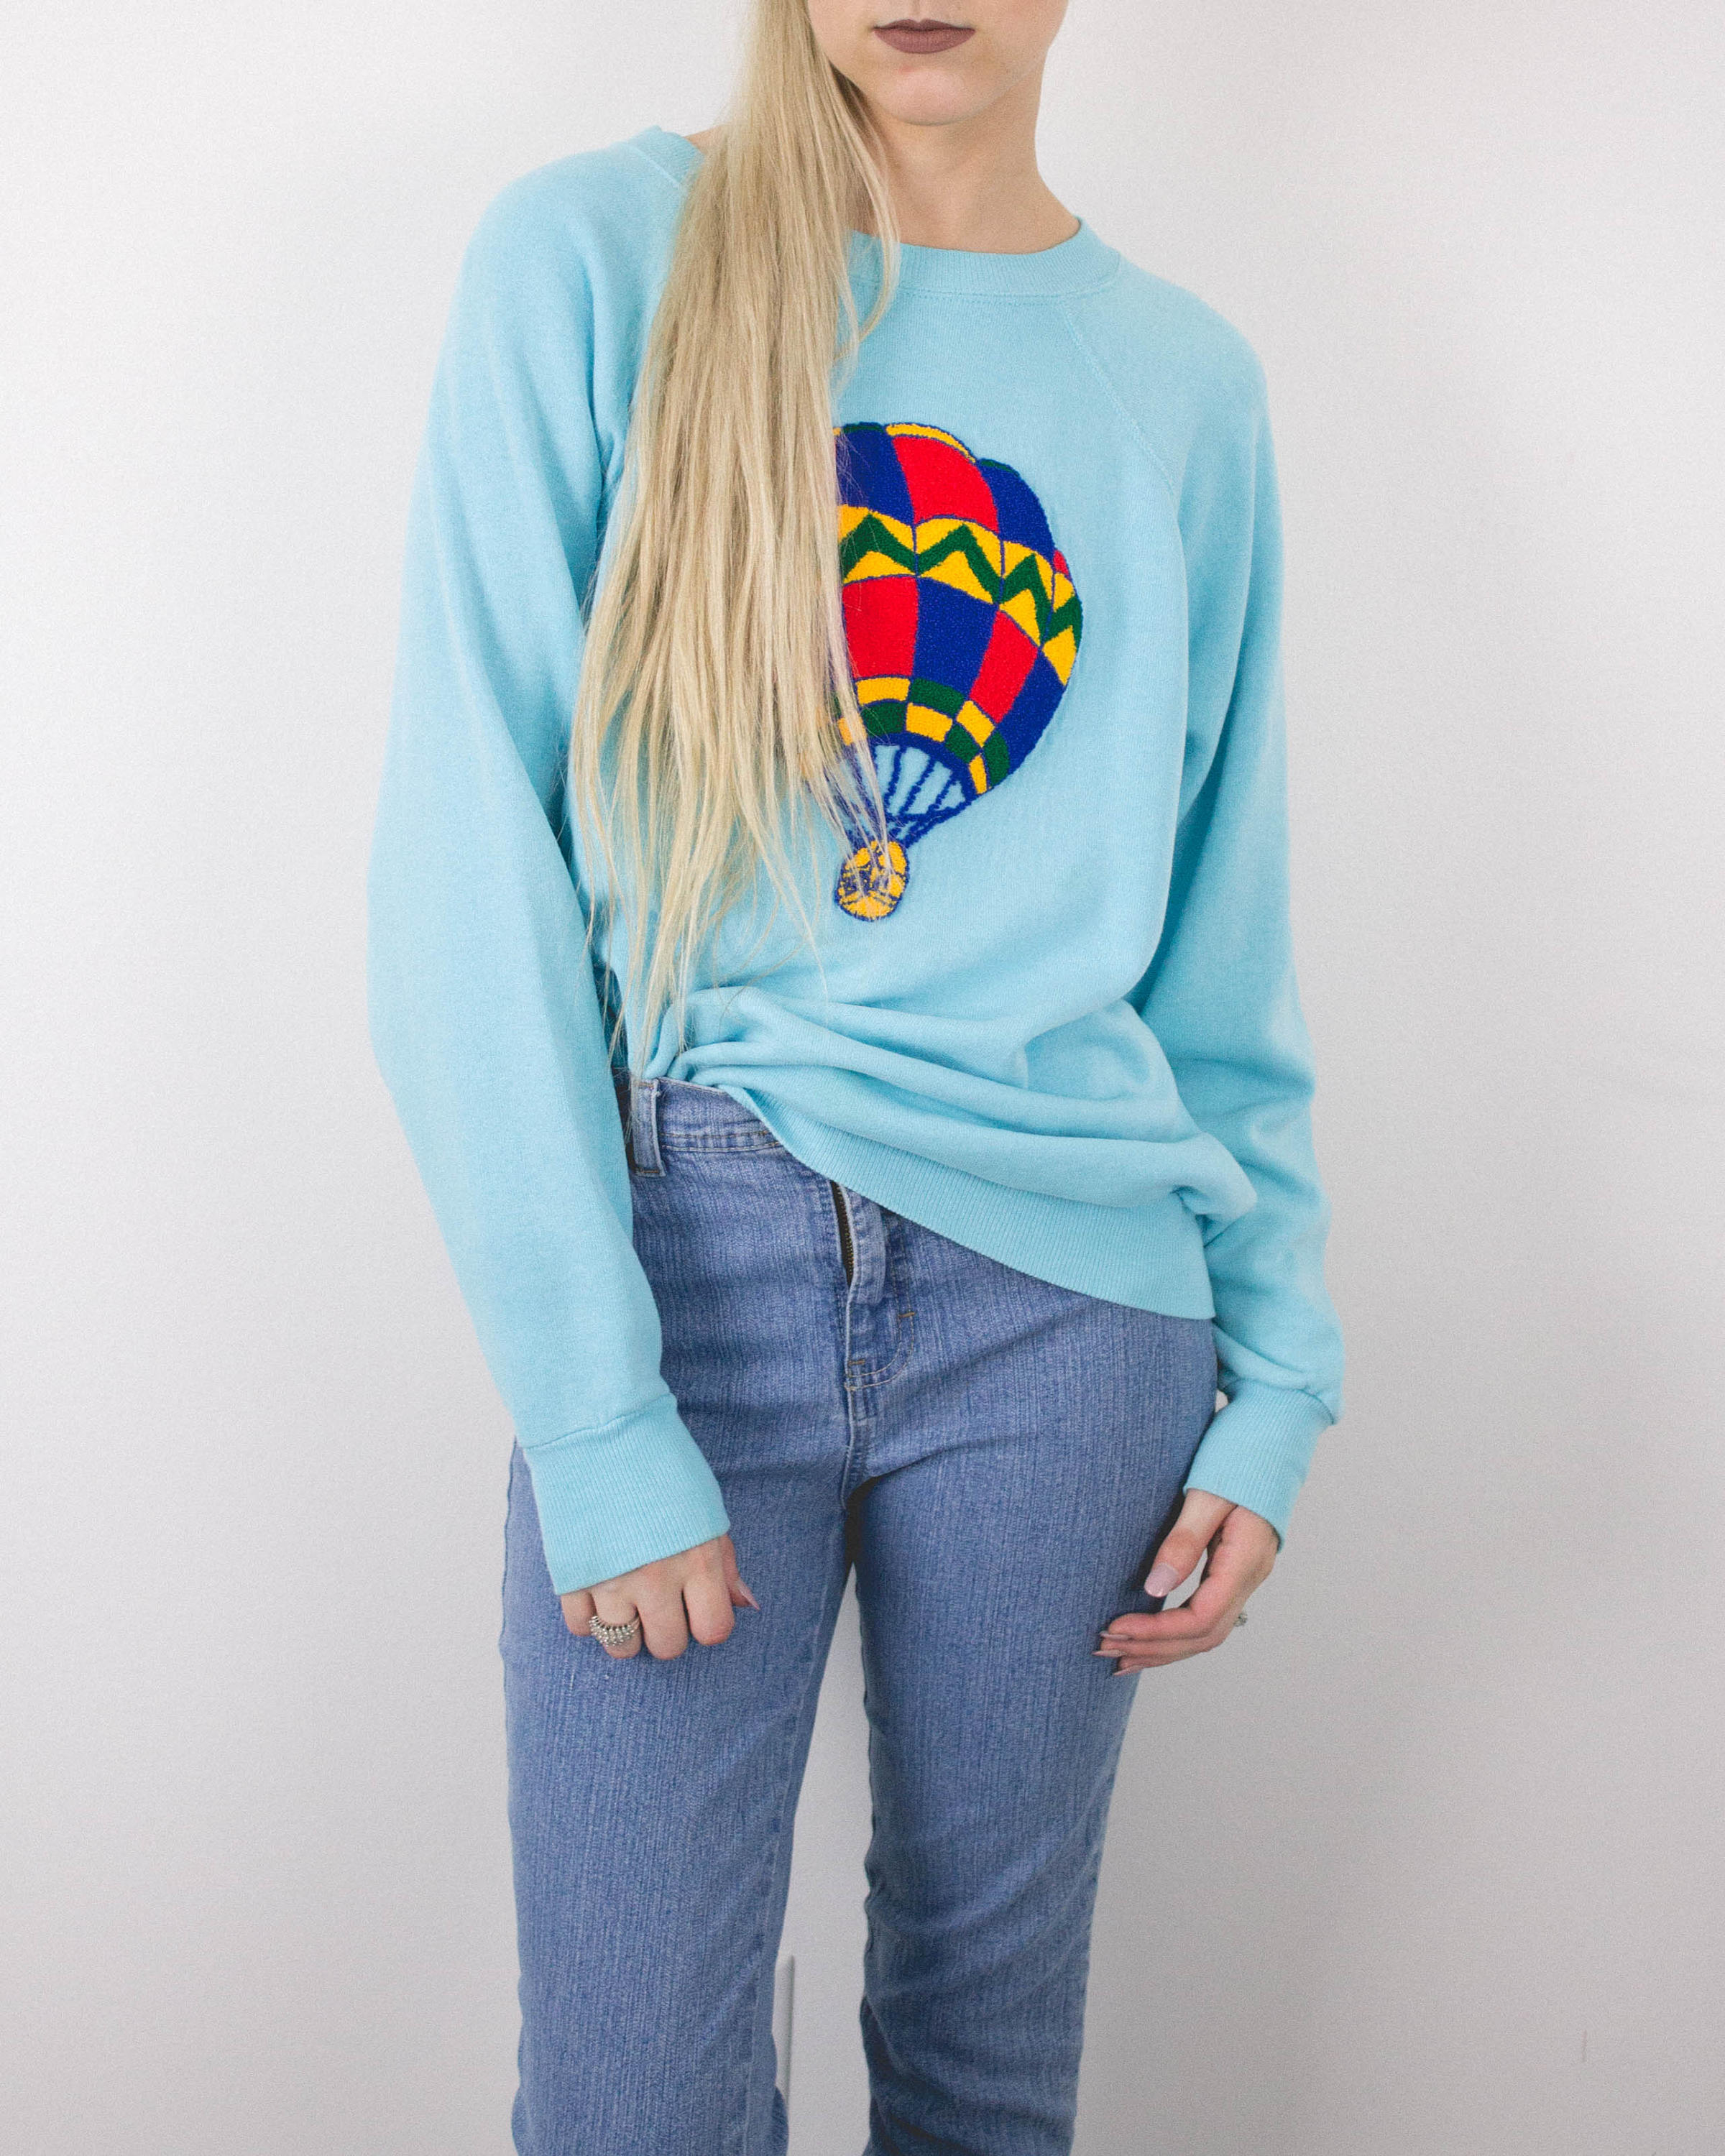 Vintage Teal Hot Air Balloon Embroidery Sweatshirt